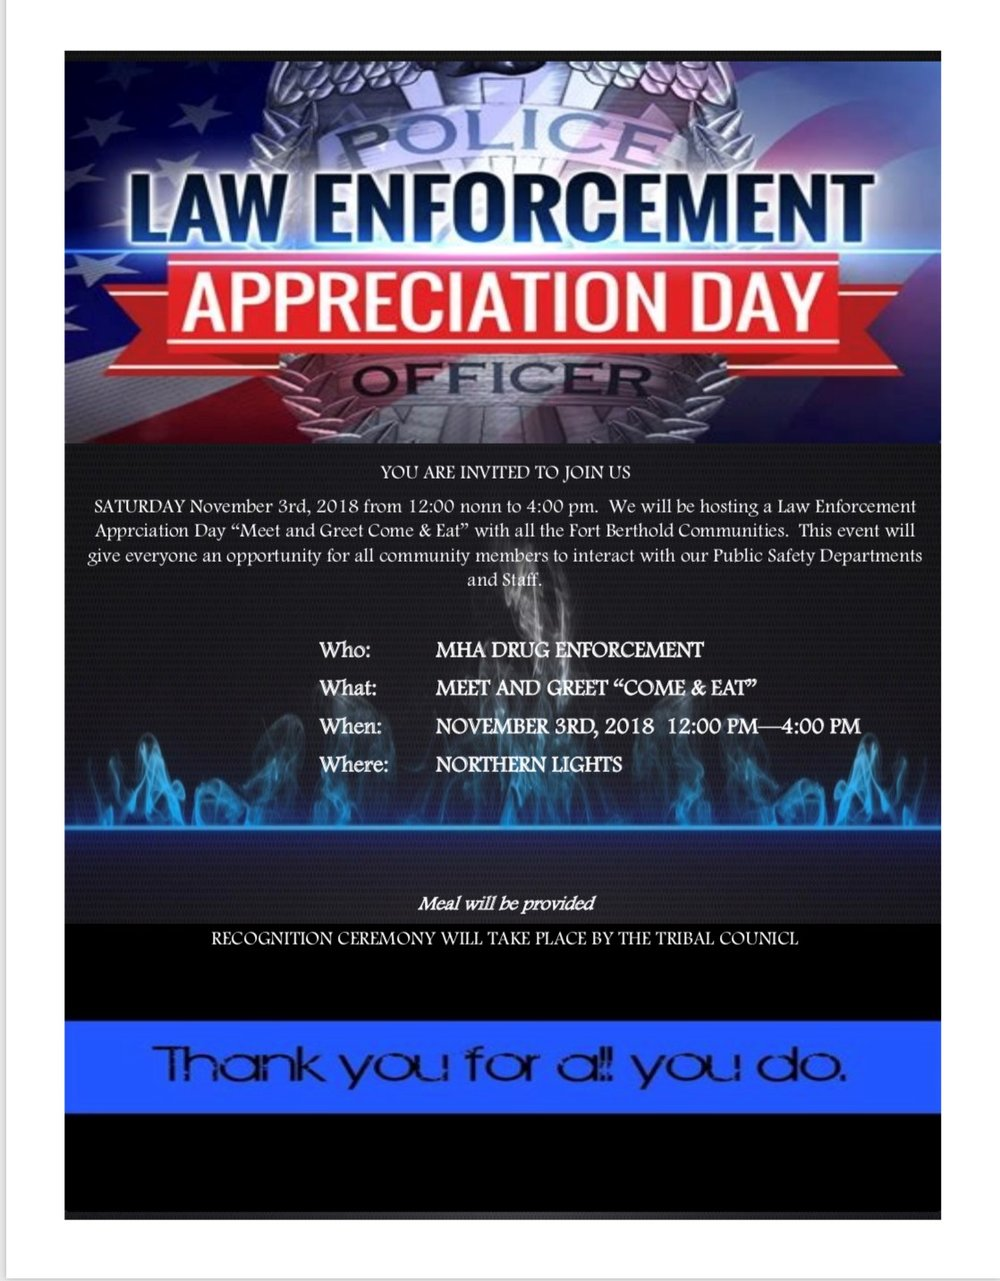 Law Enforcement Appreciation Day Nov 3 2018.jpg